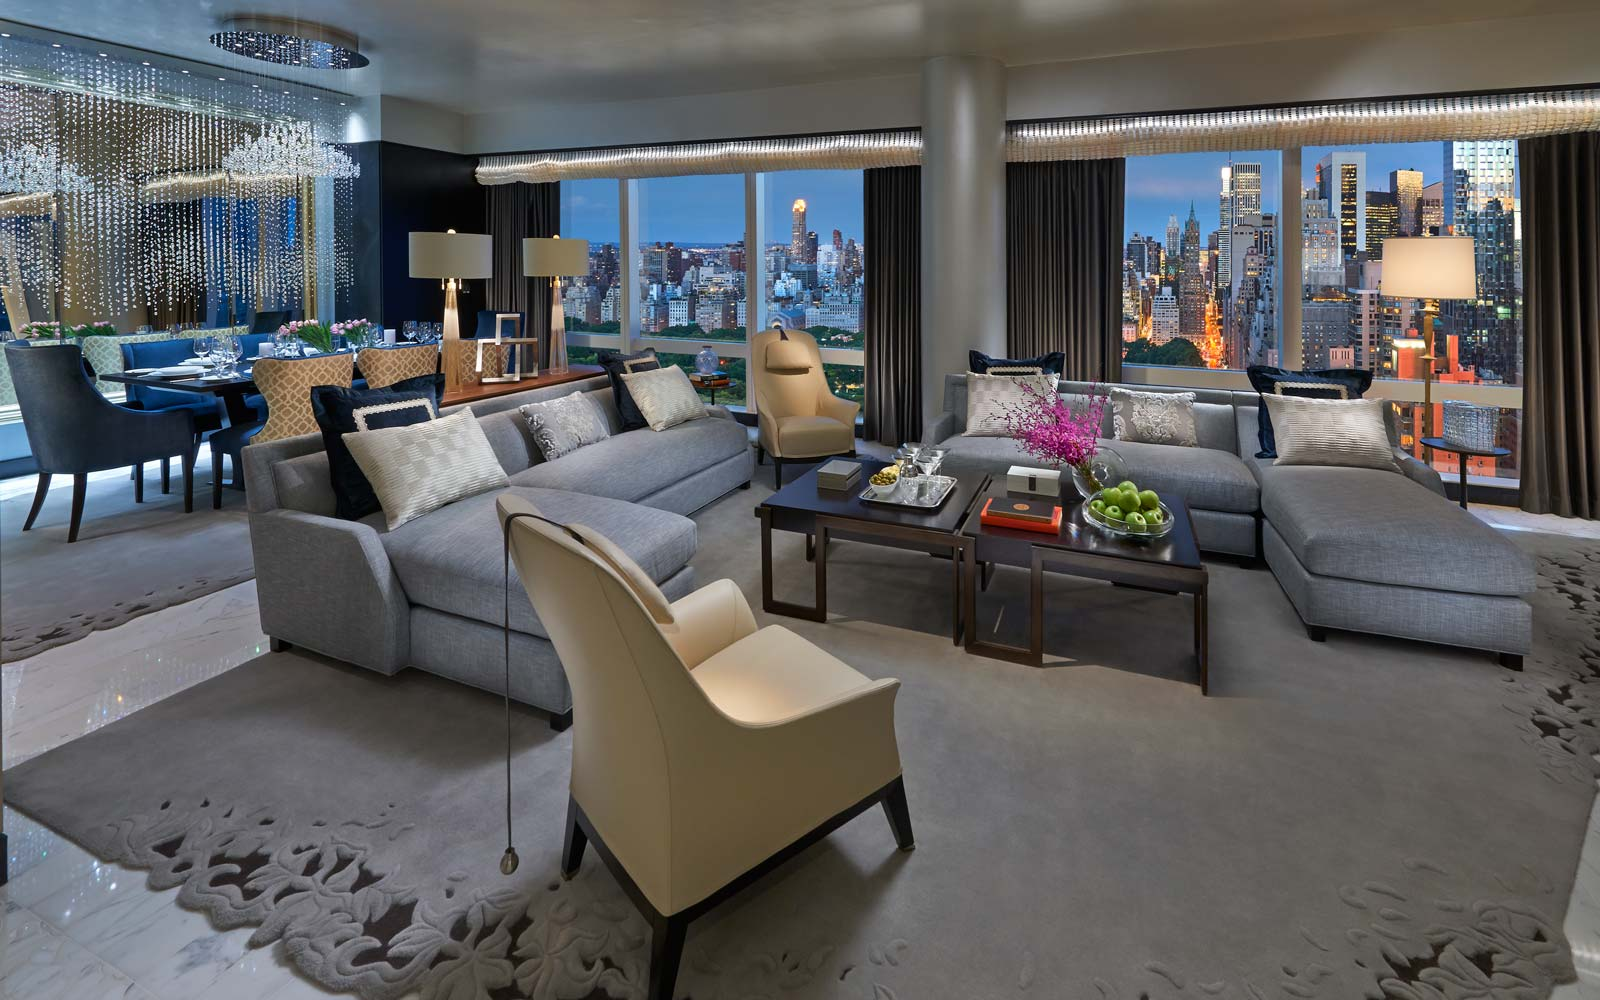 Suite 5000 at the Mandarin Oriental in New York City